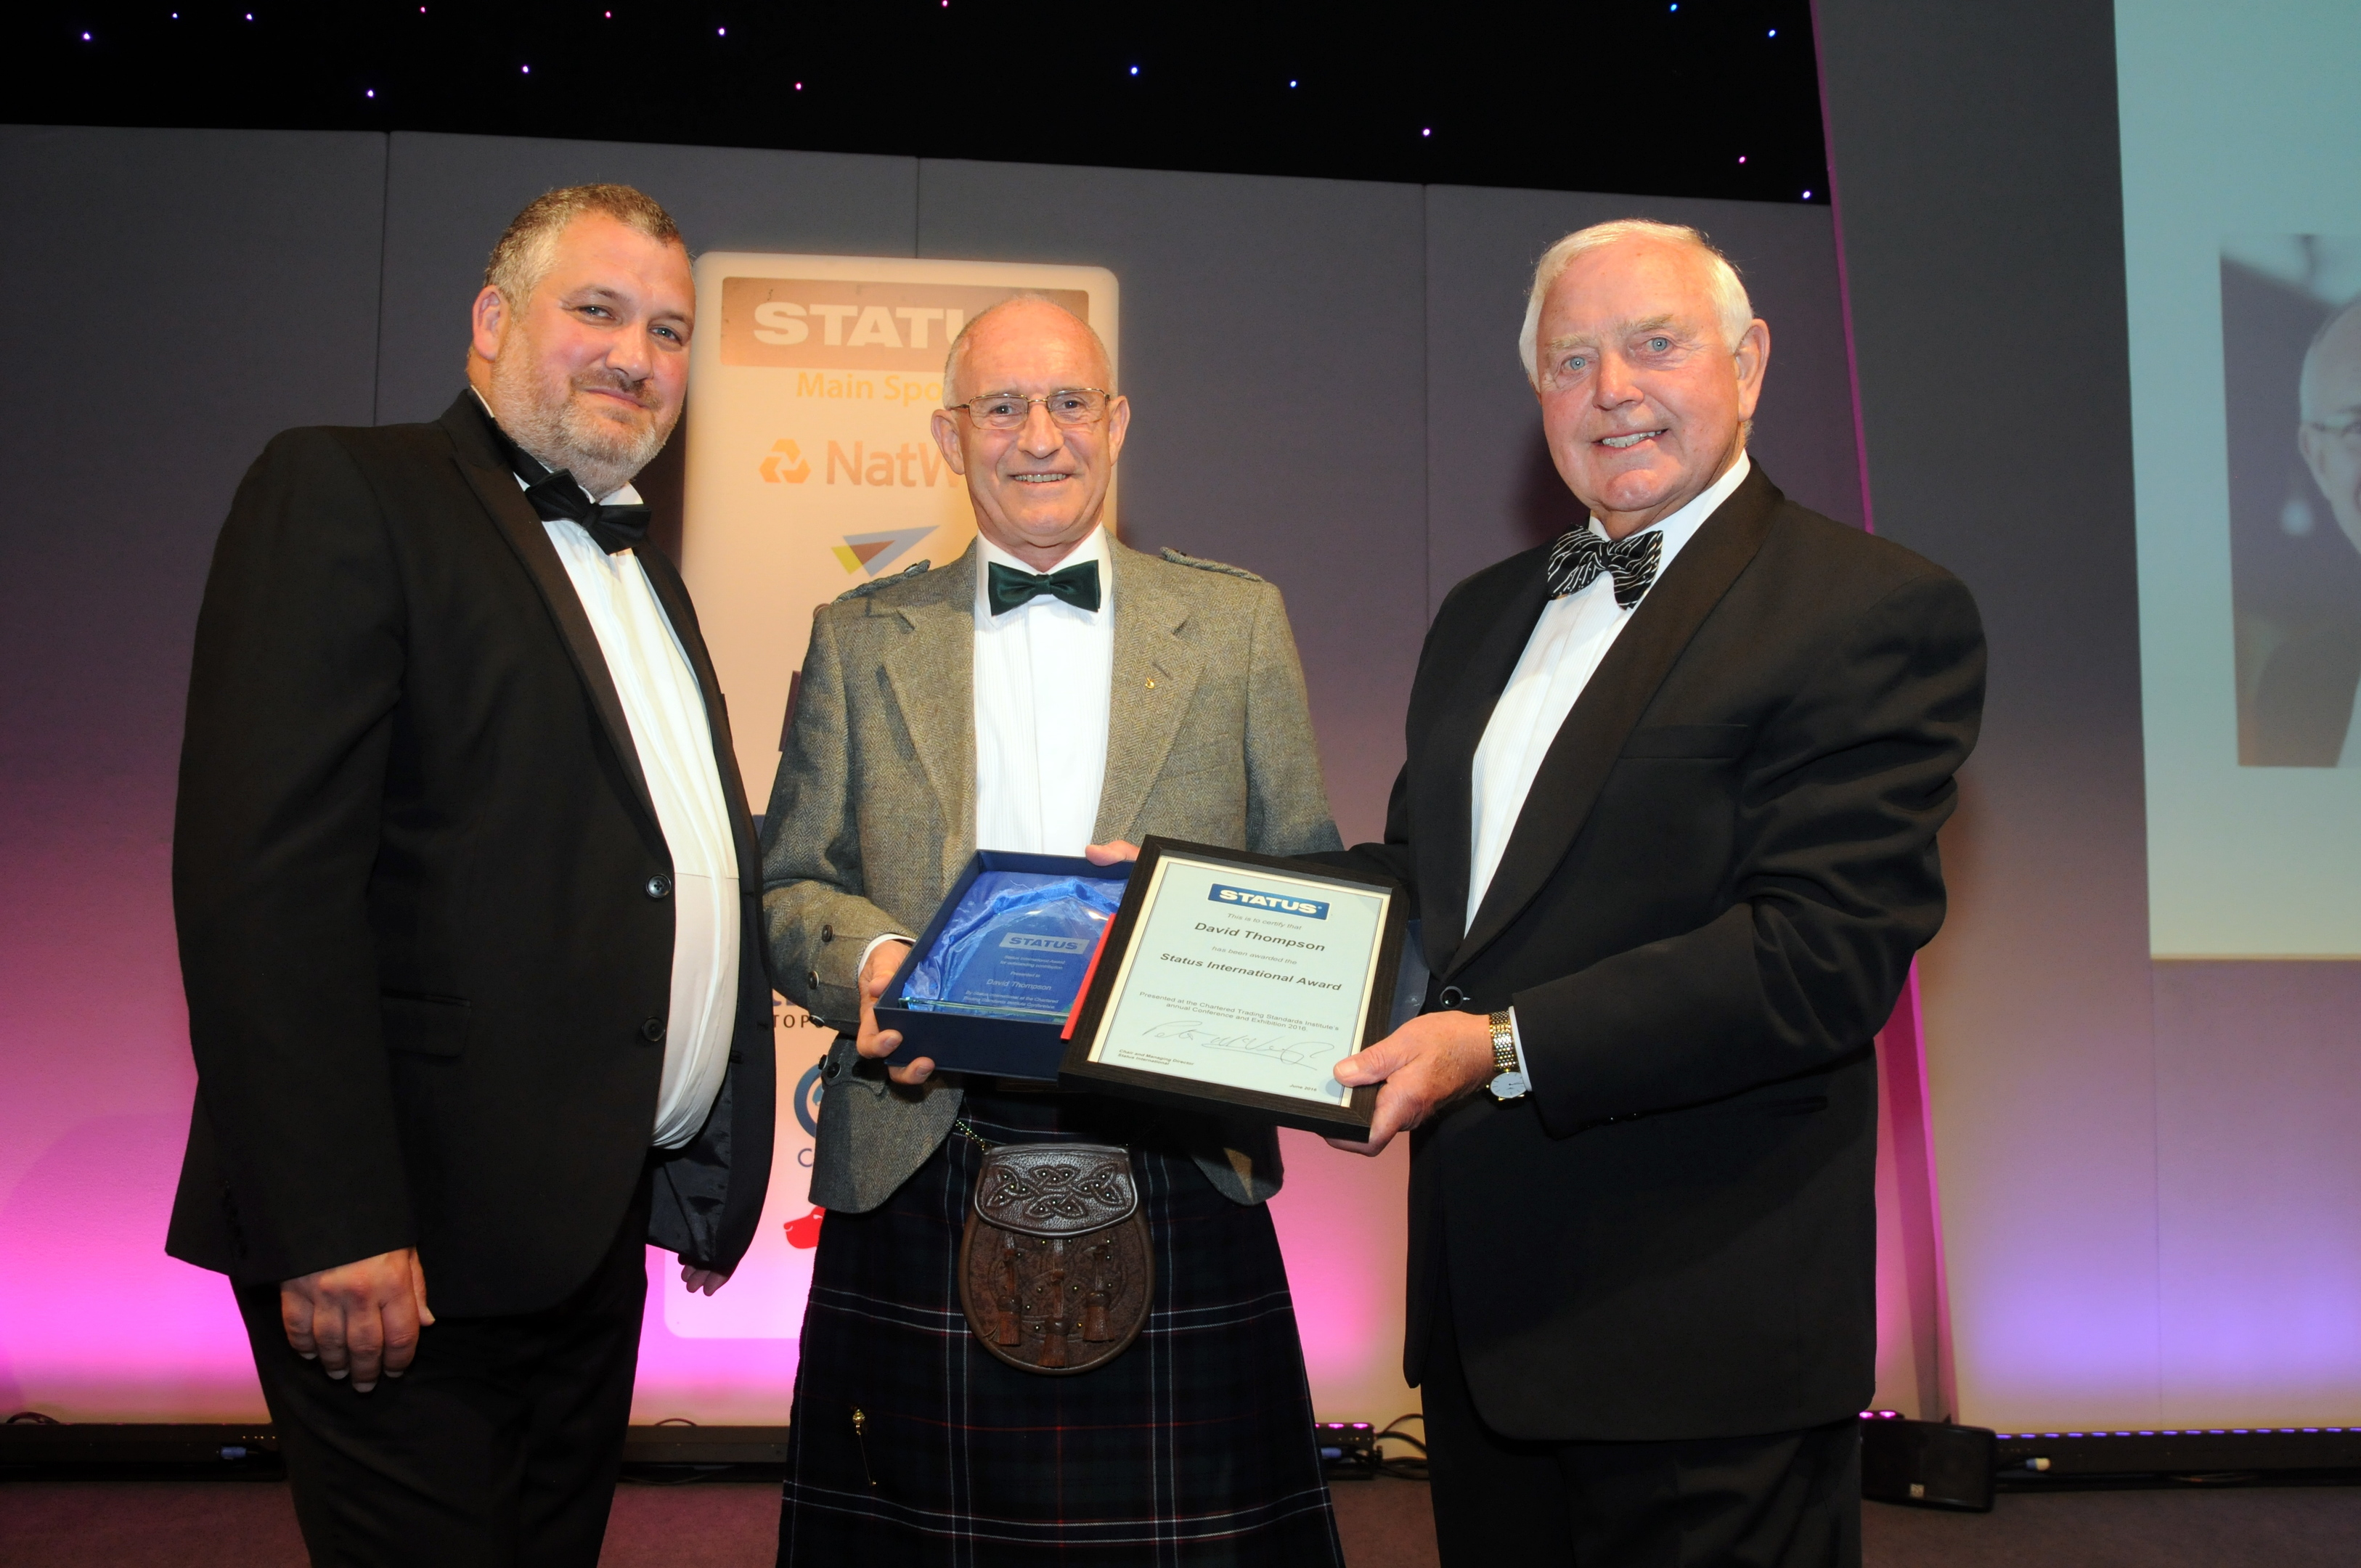 Dave Thompson is presented with a Status International Award from the Chartered Trading Standards Institute